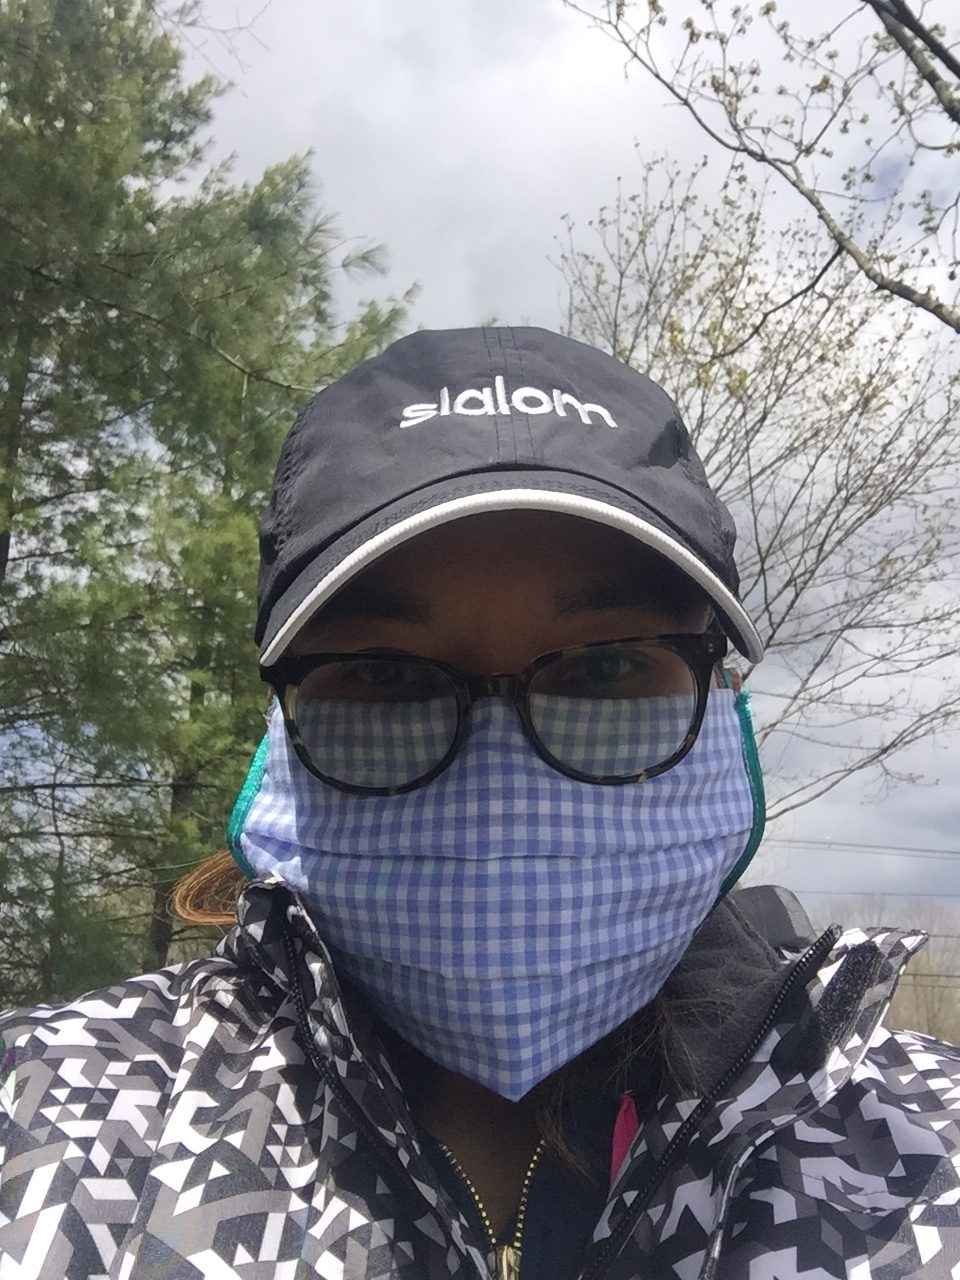 Woman with gingam face mask, glasses, and hat.